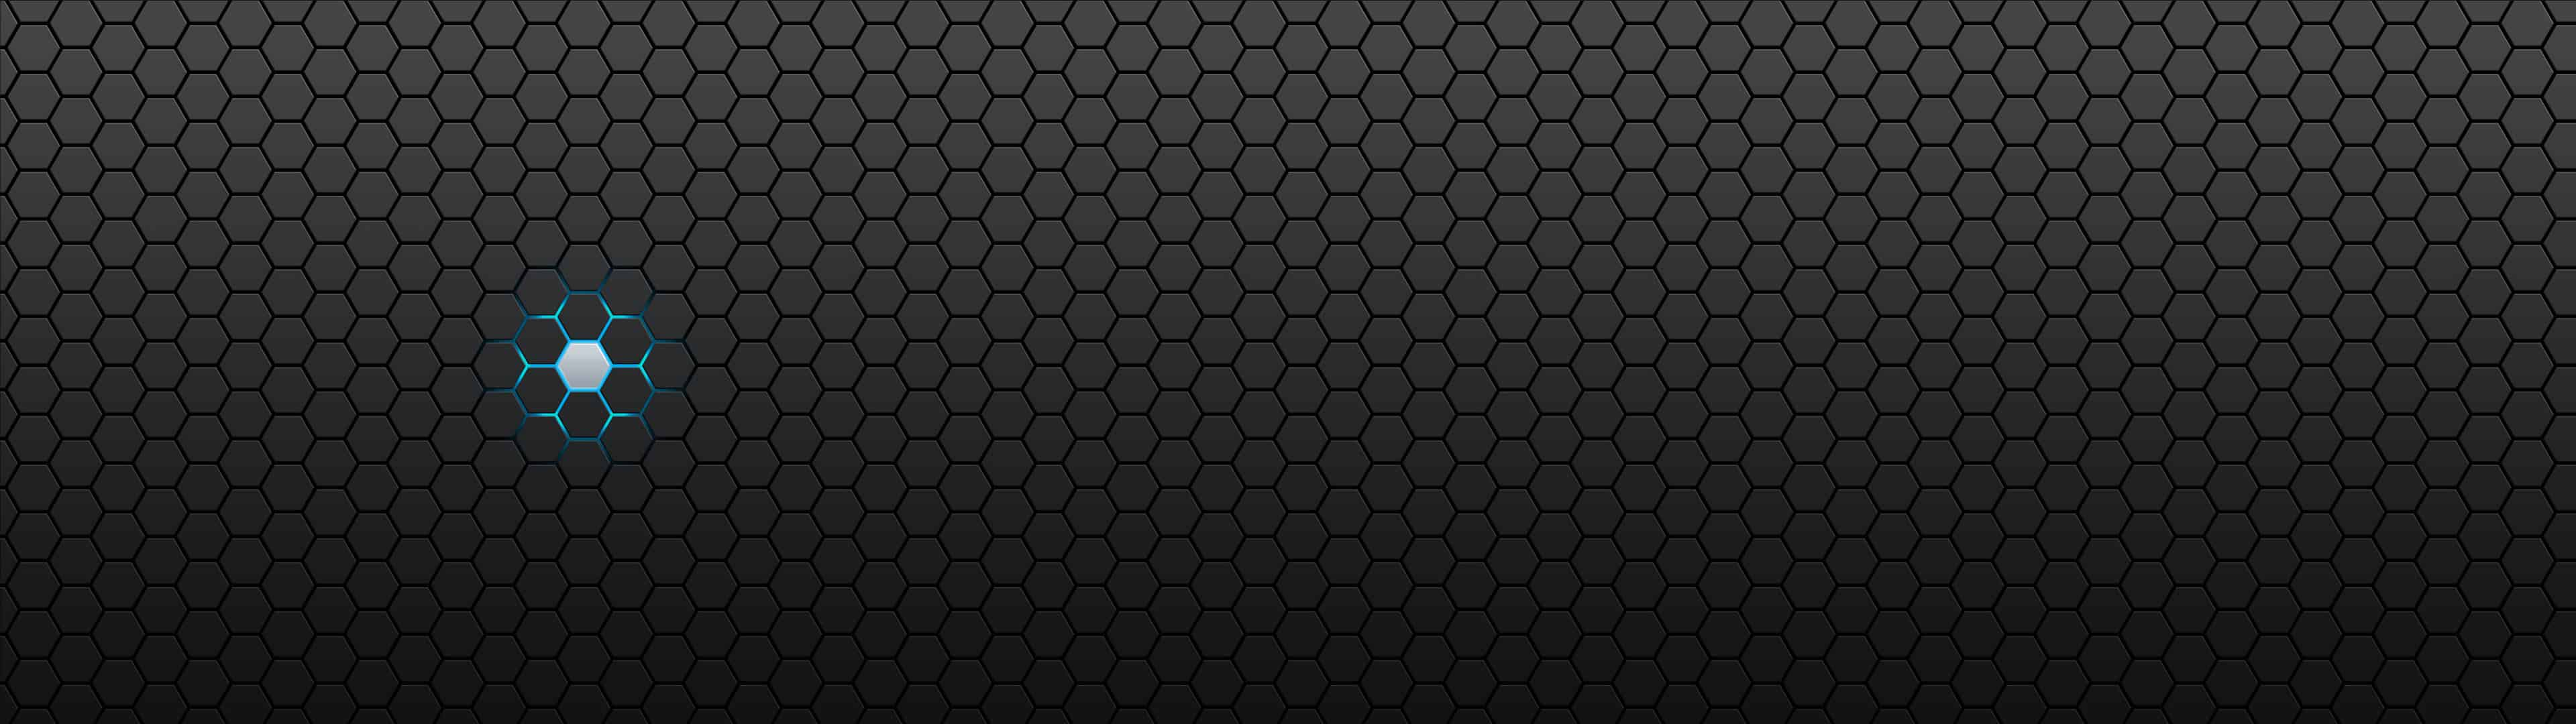 octagon pattern black and blue dual monitor wallpaper